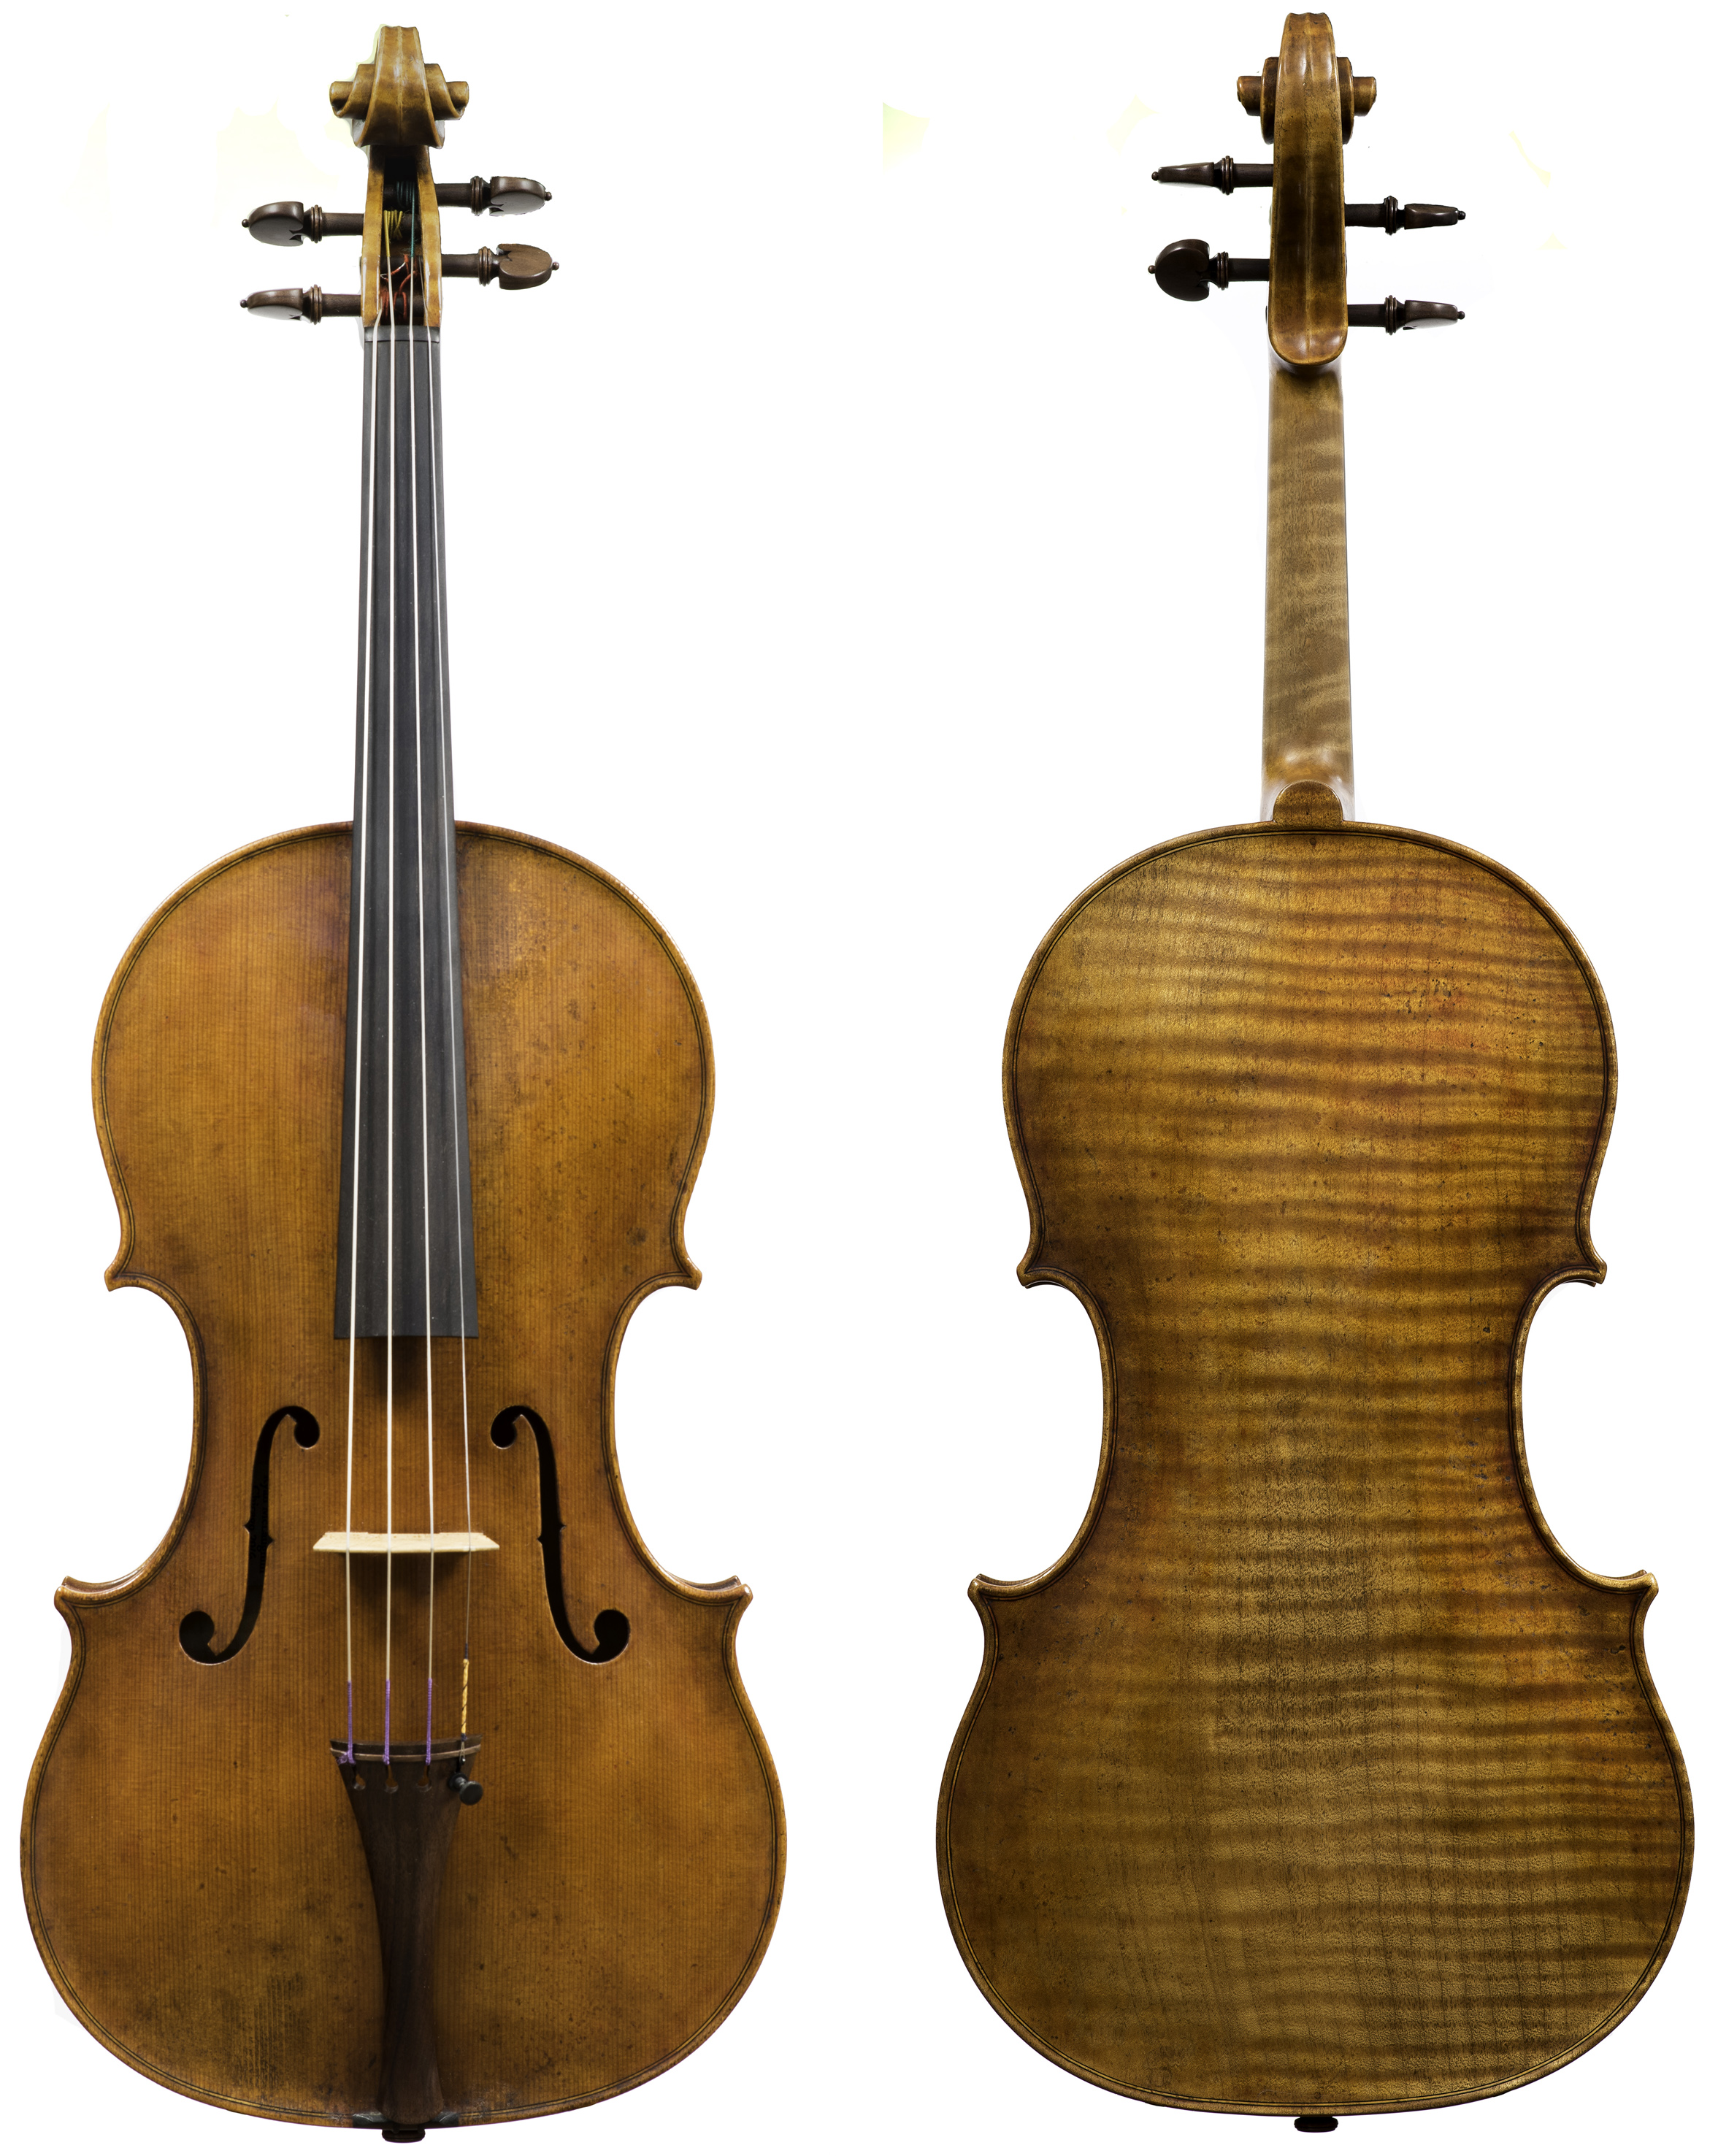 Instruments For Sale - Browse a sample selection of top quality instruments for sale, and find the ideal instrument for any musician; from budding enthusiast to seasoned performer; tuned, tested and adjusted to ensure optimum performance, including fine, handcrafted professional instruments capable of incredibly intricate tones.